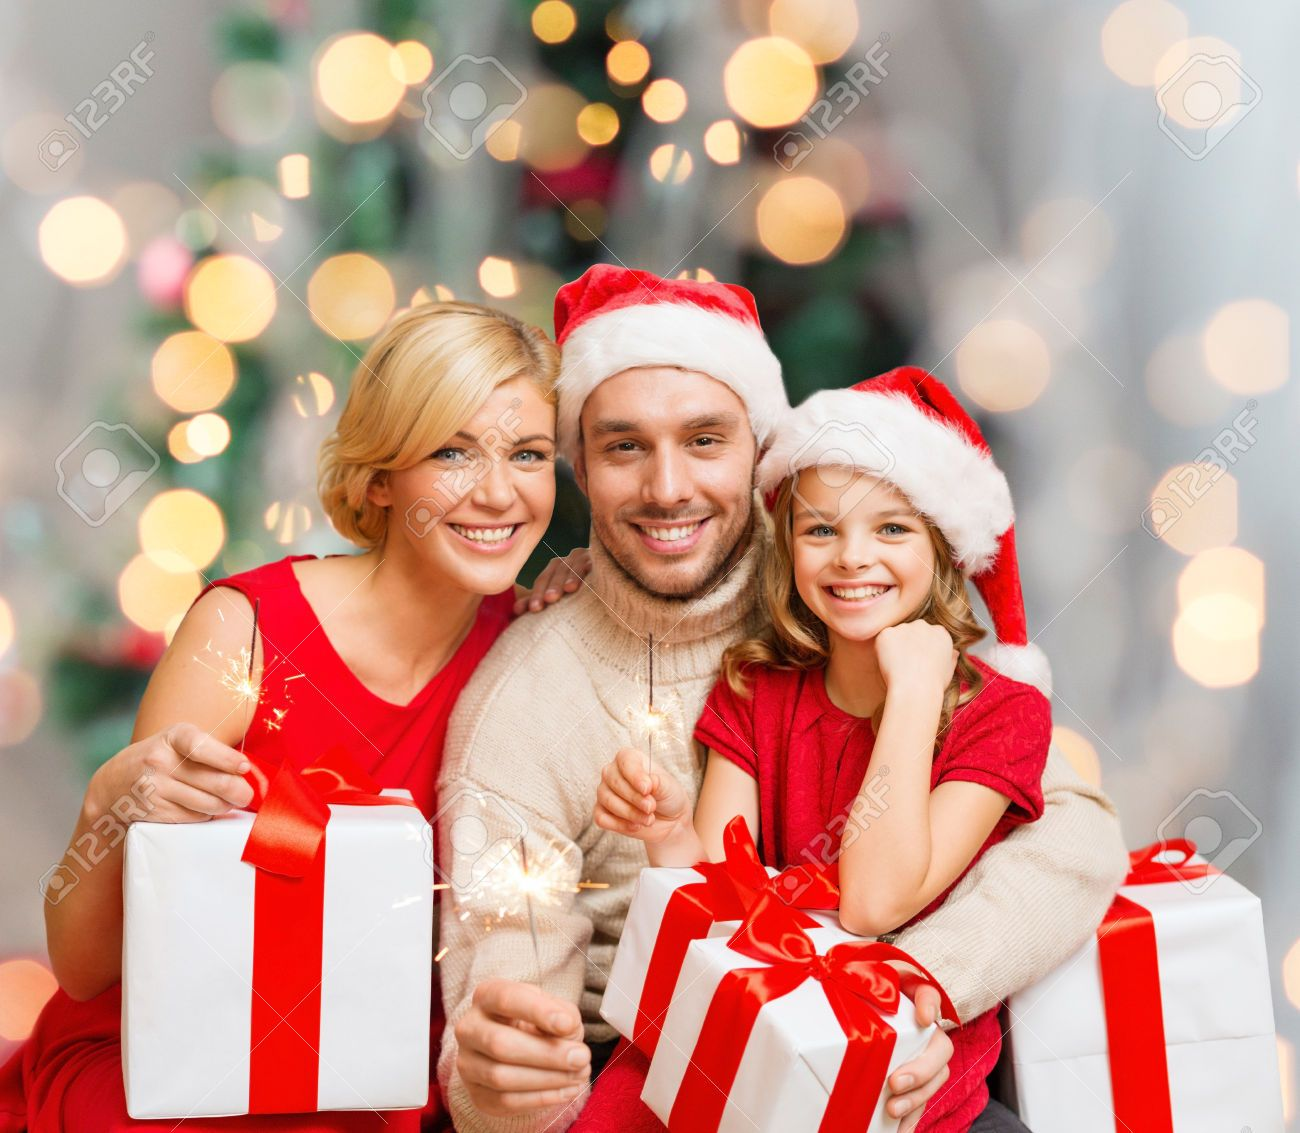 Christmas, Holidays, Family And People Concept - Happy Mother ...